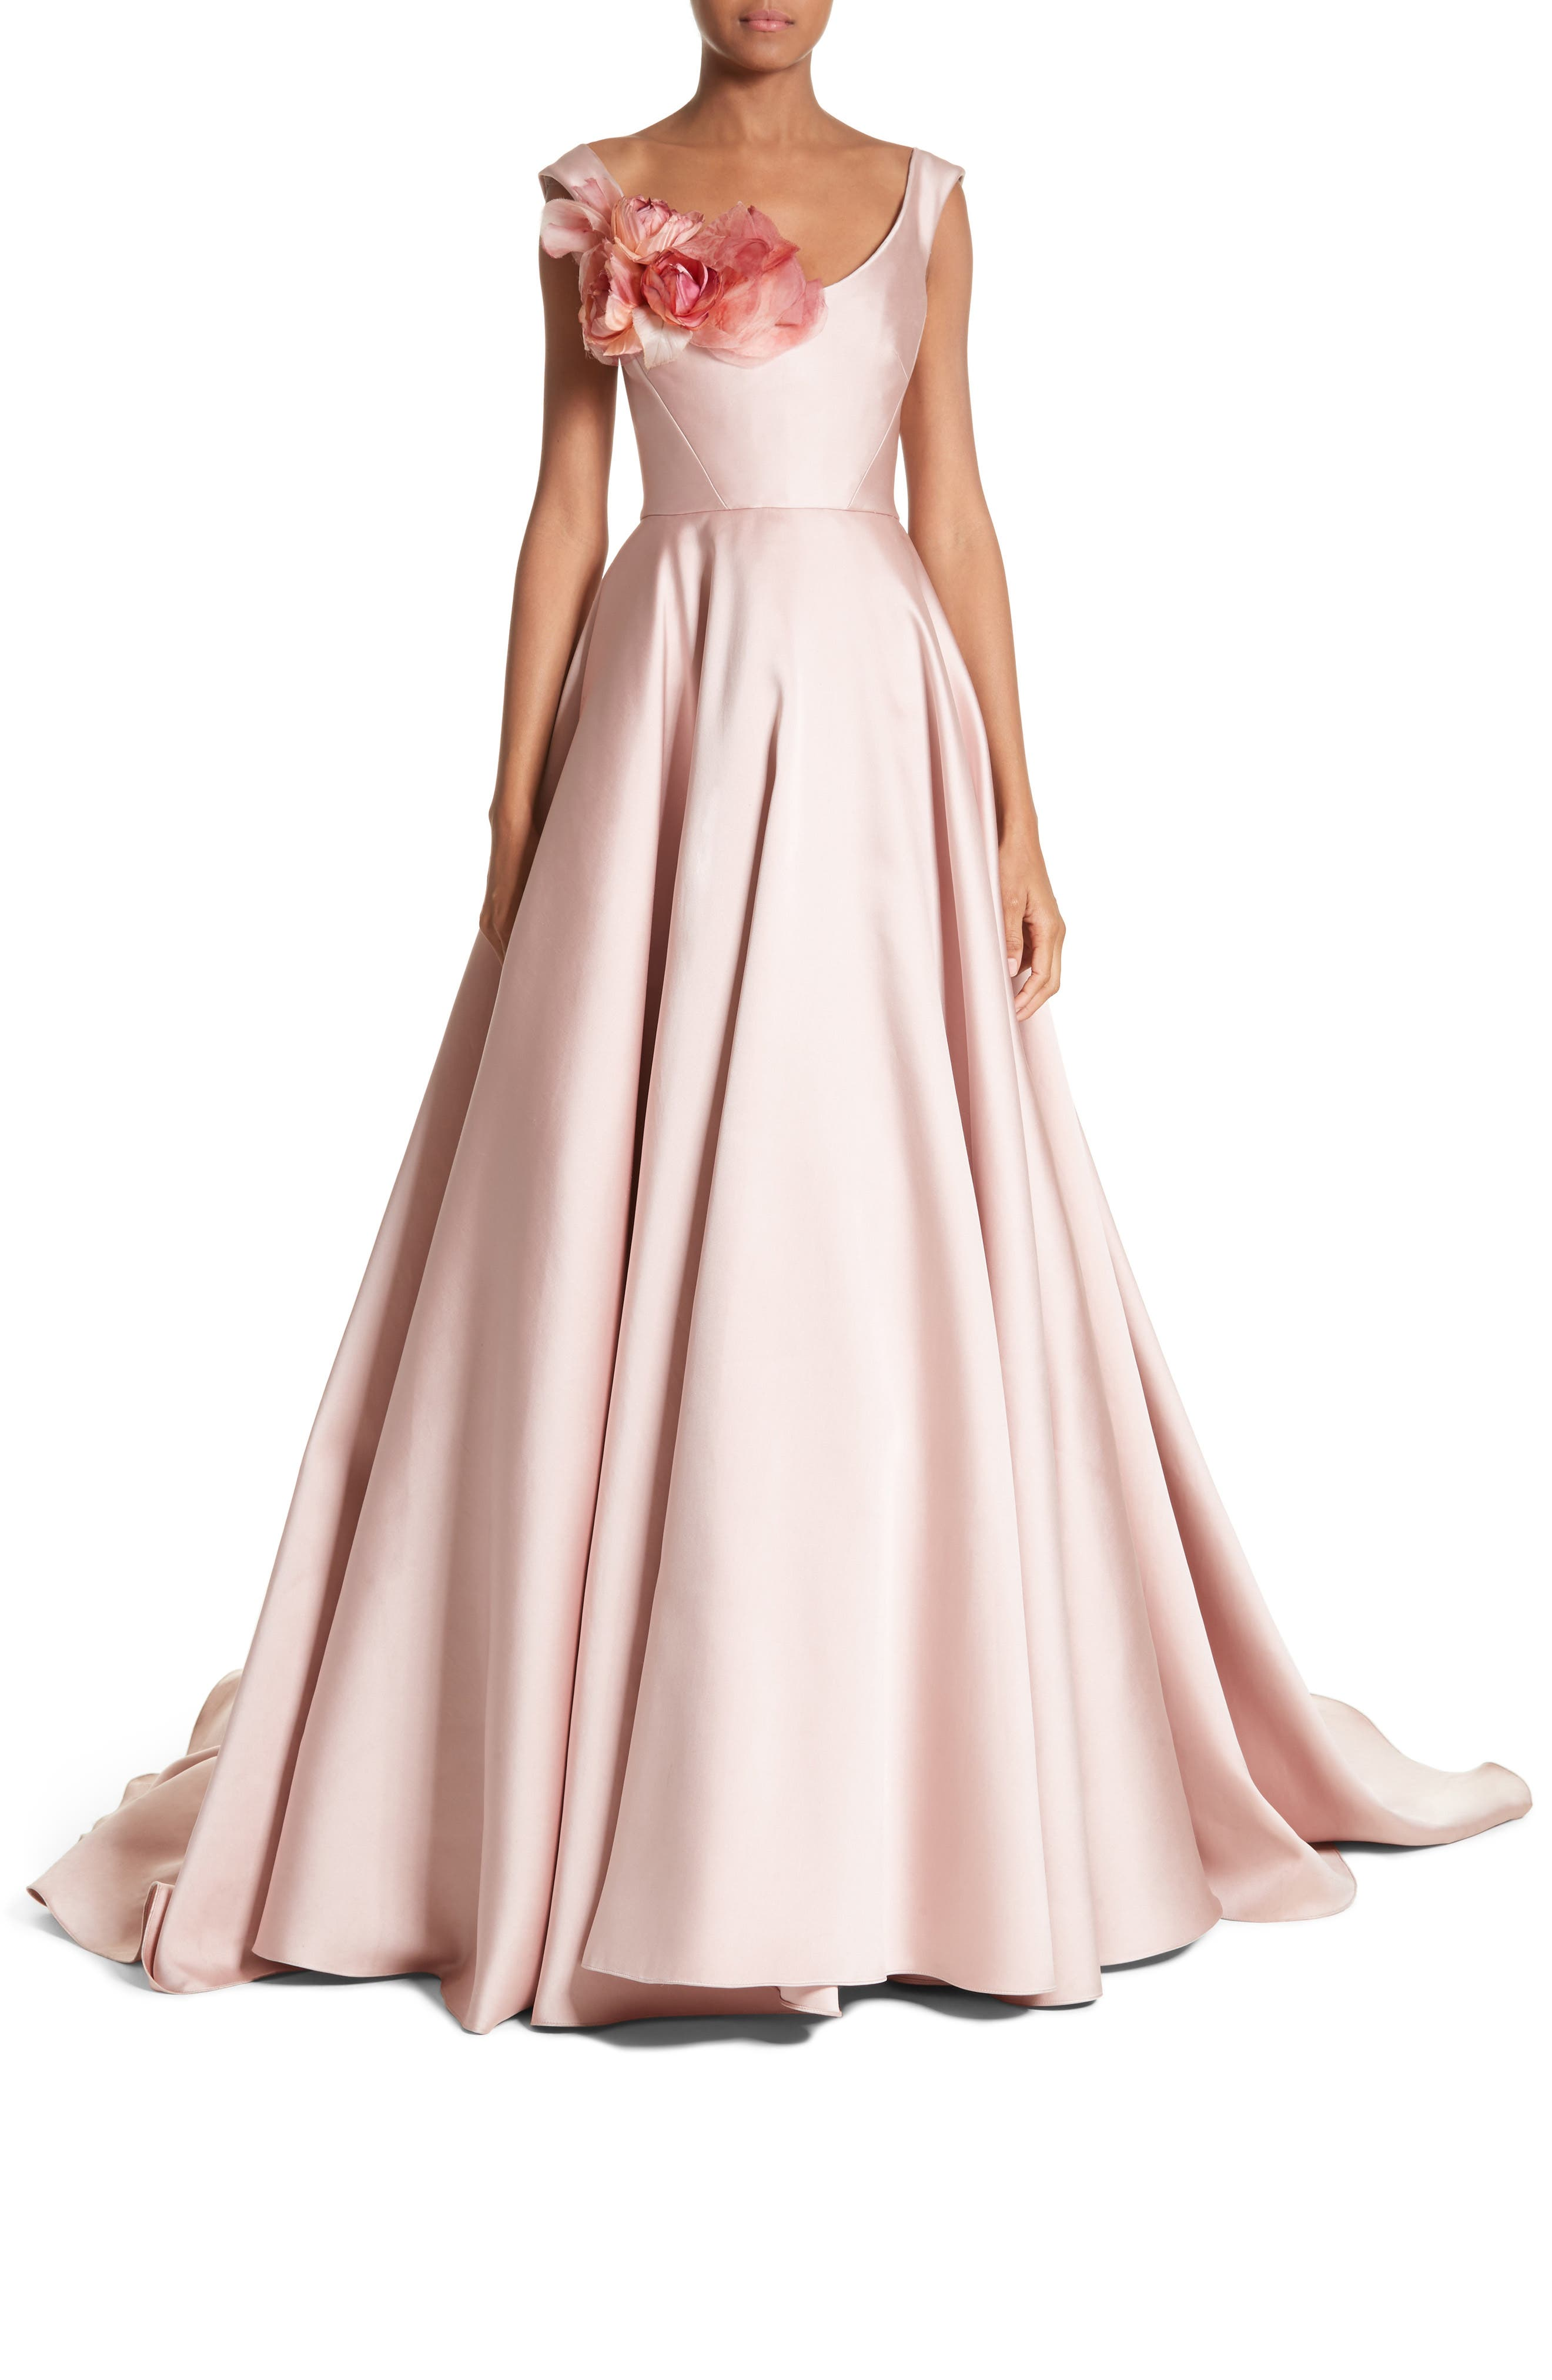 Main Image - Marchesa Corsage Off the Shoulder Satin Ballgown